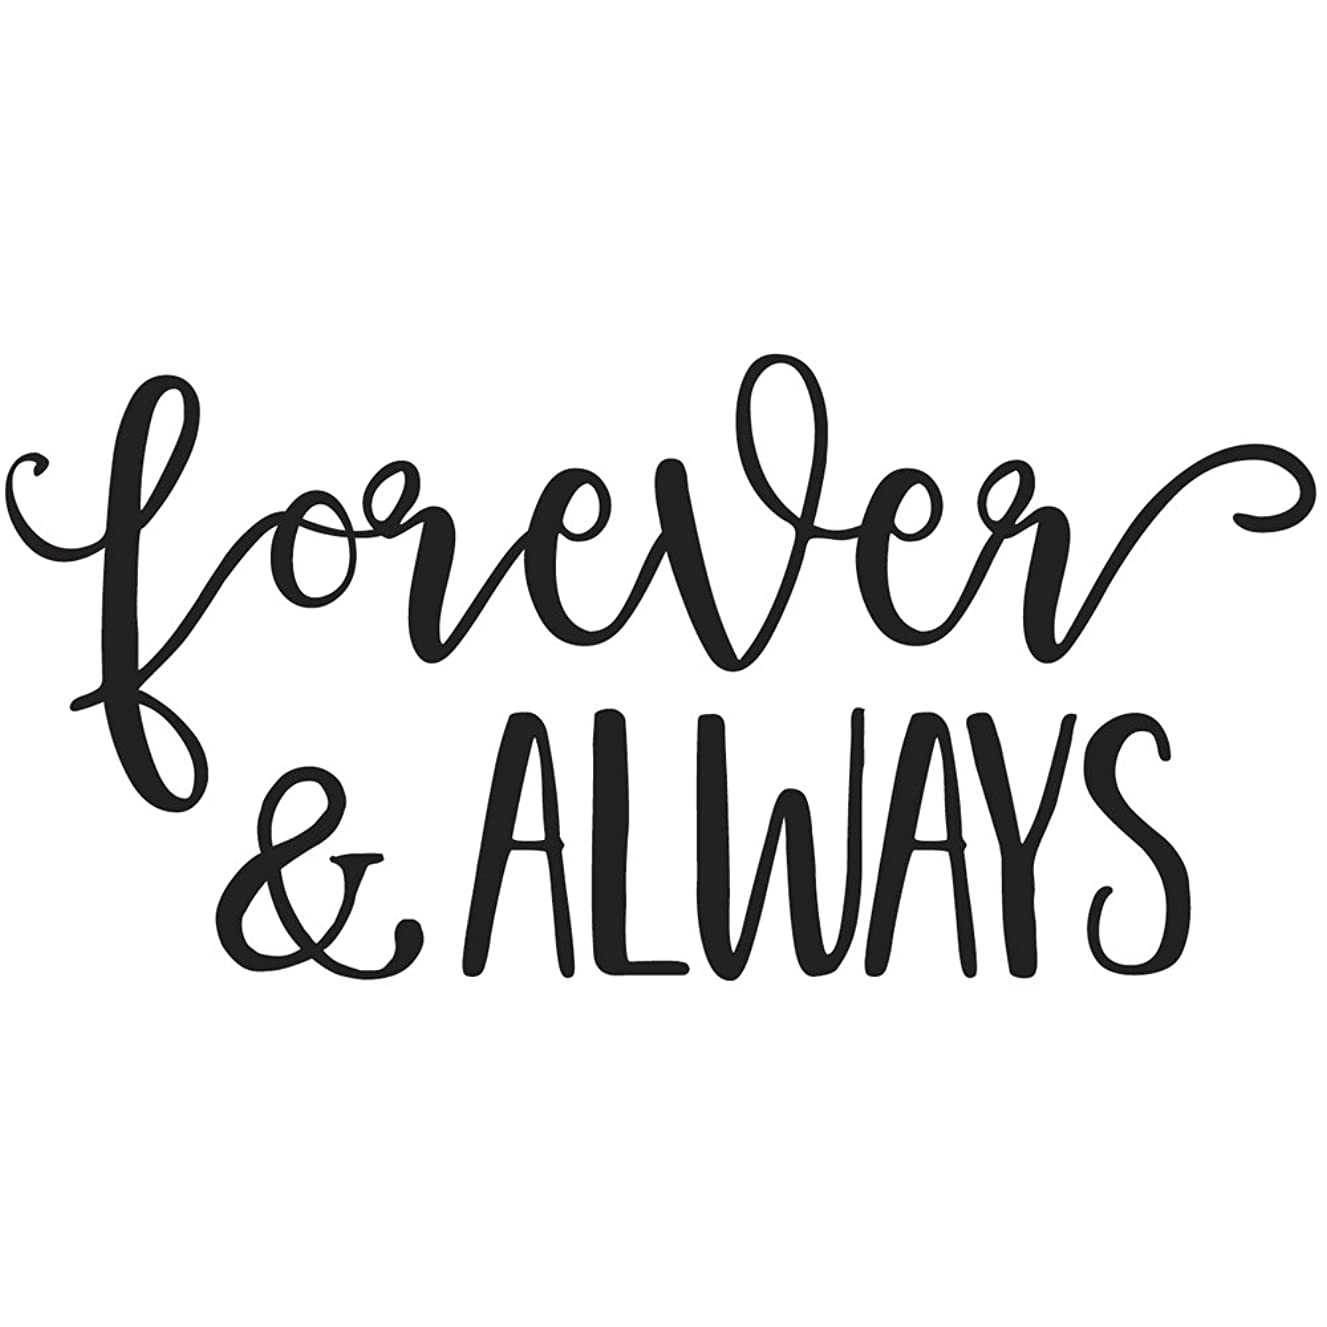 Rayher 29123000 Wood Mounted Rubber Stamp Featuring The Phrase Forever & Always, Stamps for Wedding, Crafting, Card Making and Scrapbooking, 12cm x 6cm